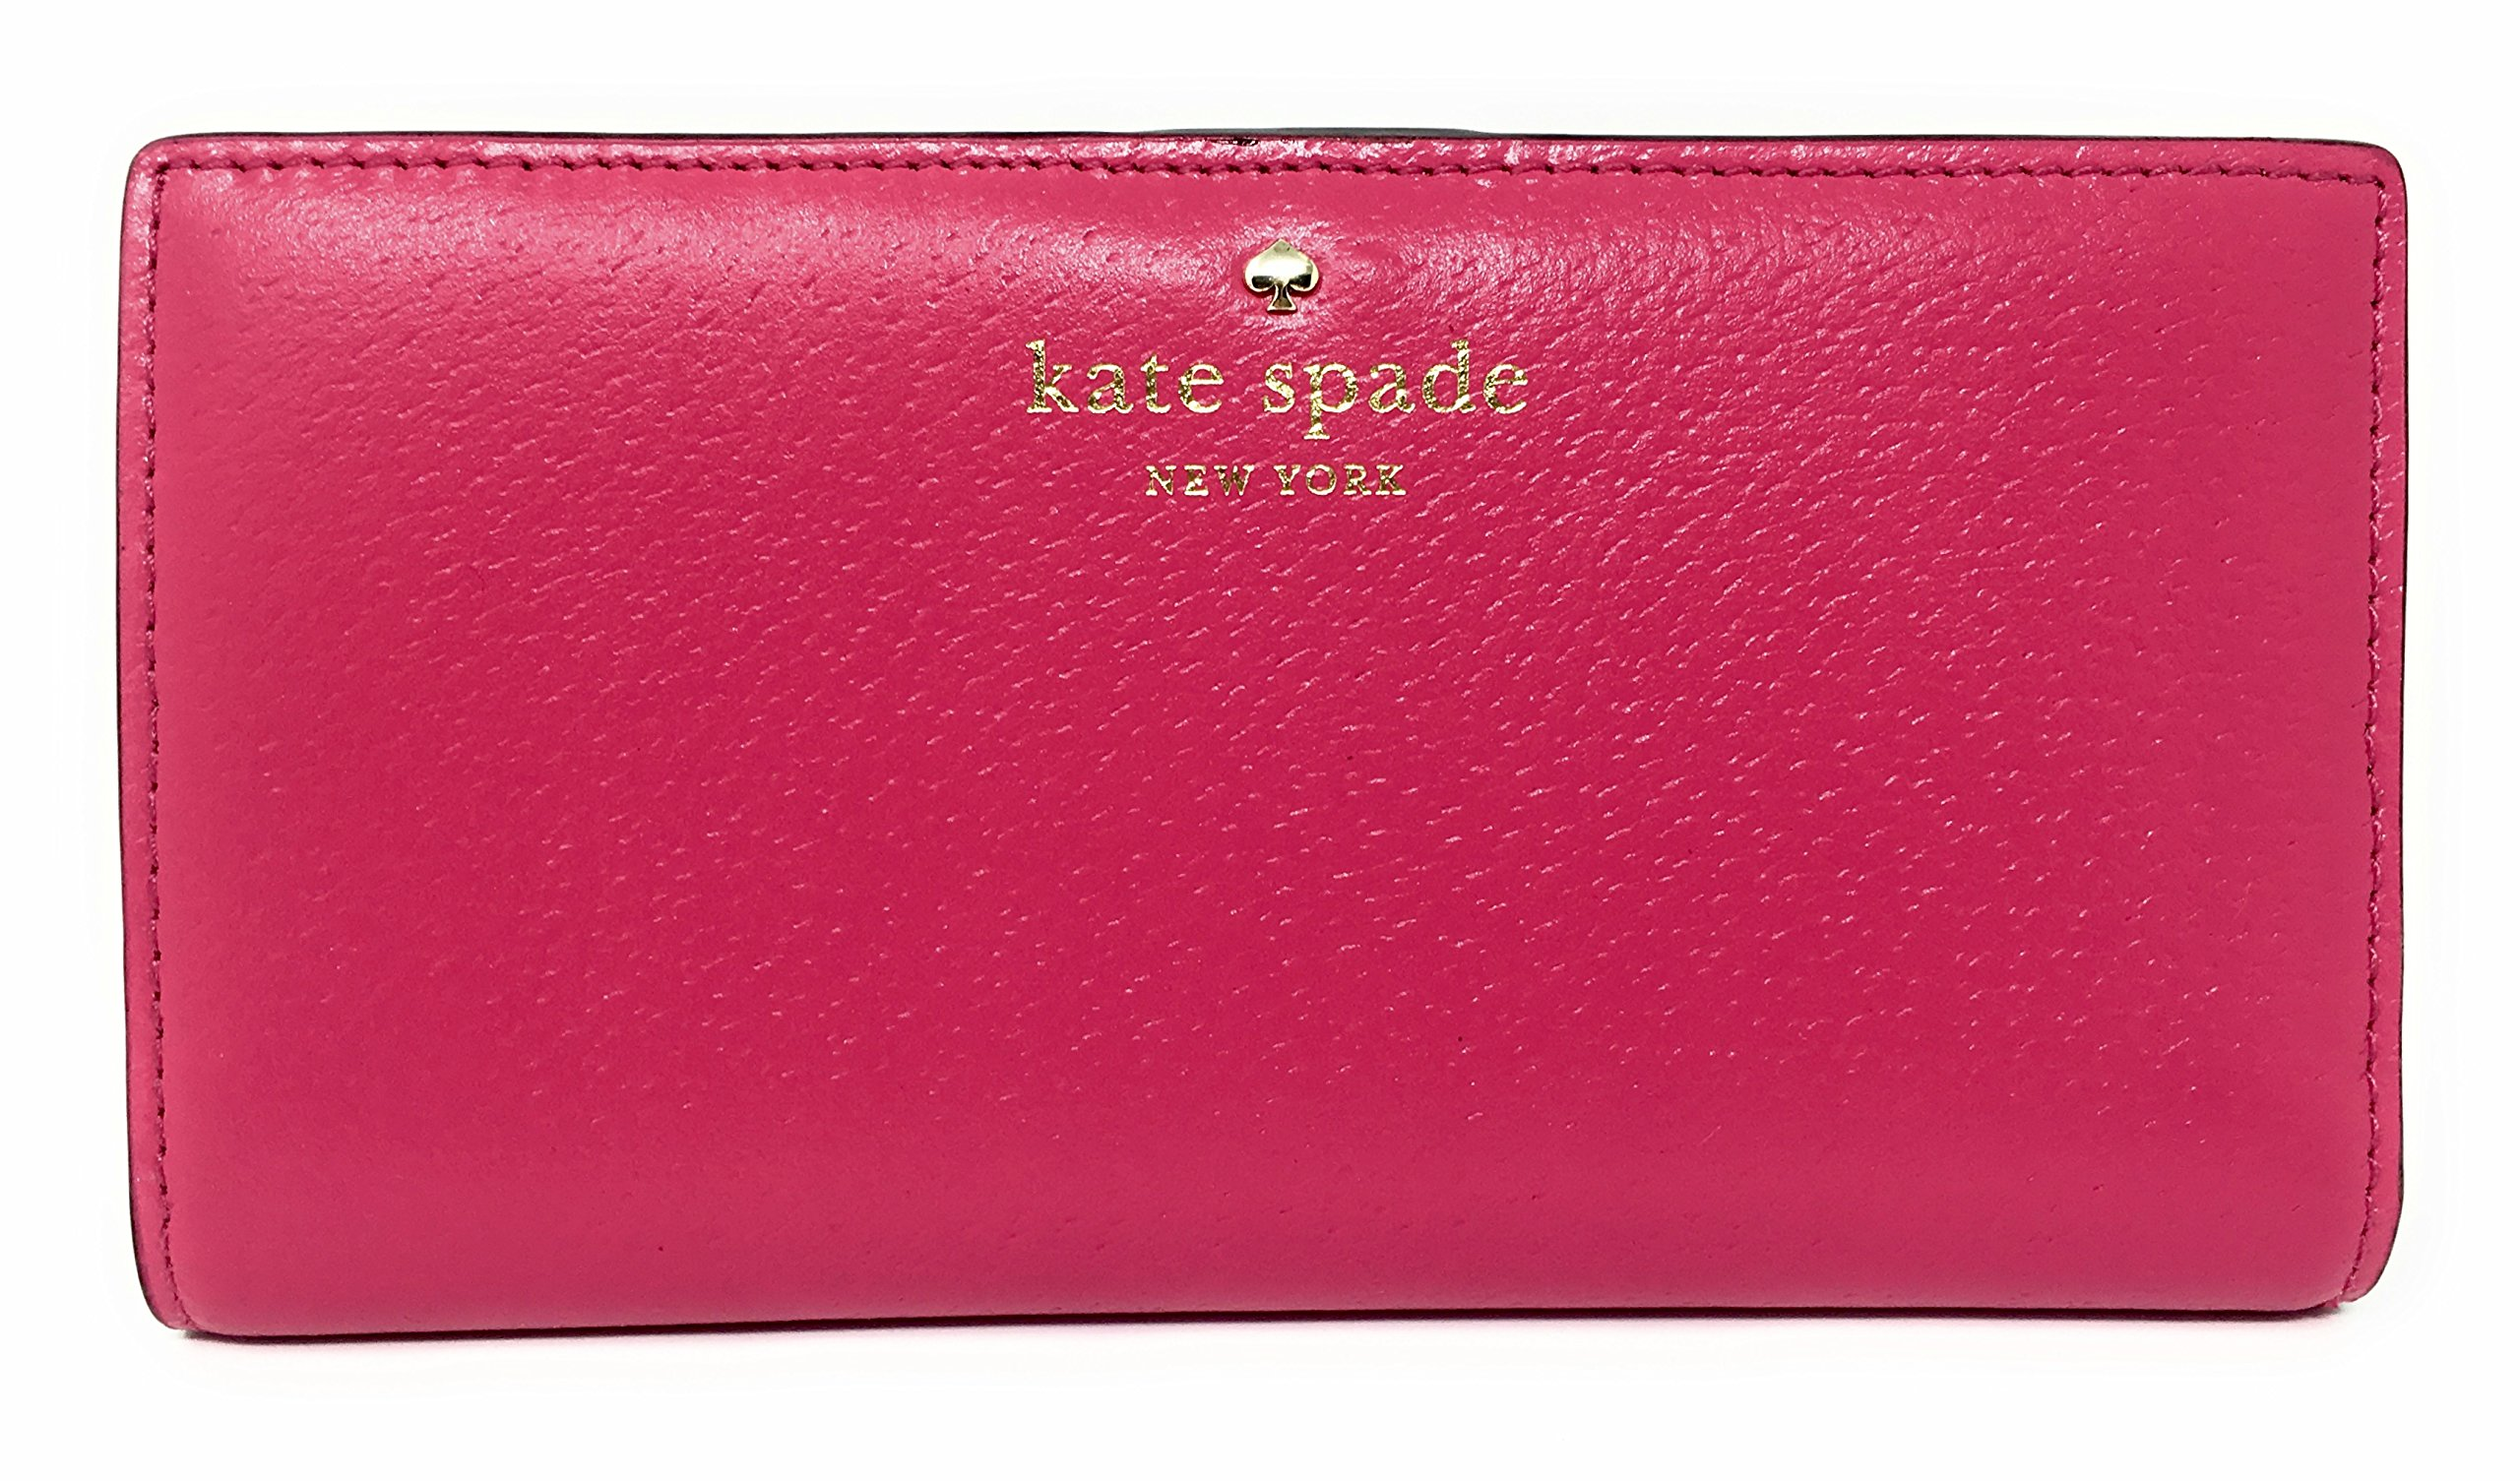 Kate Spade New York Grand Street Stacy Leather Wallet (Radish)